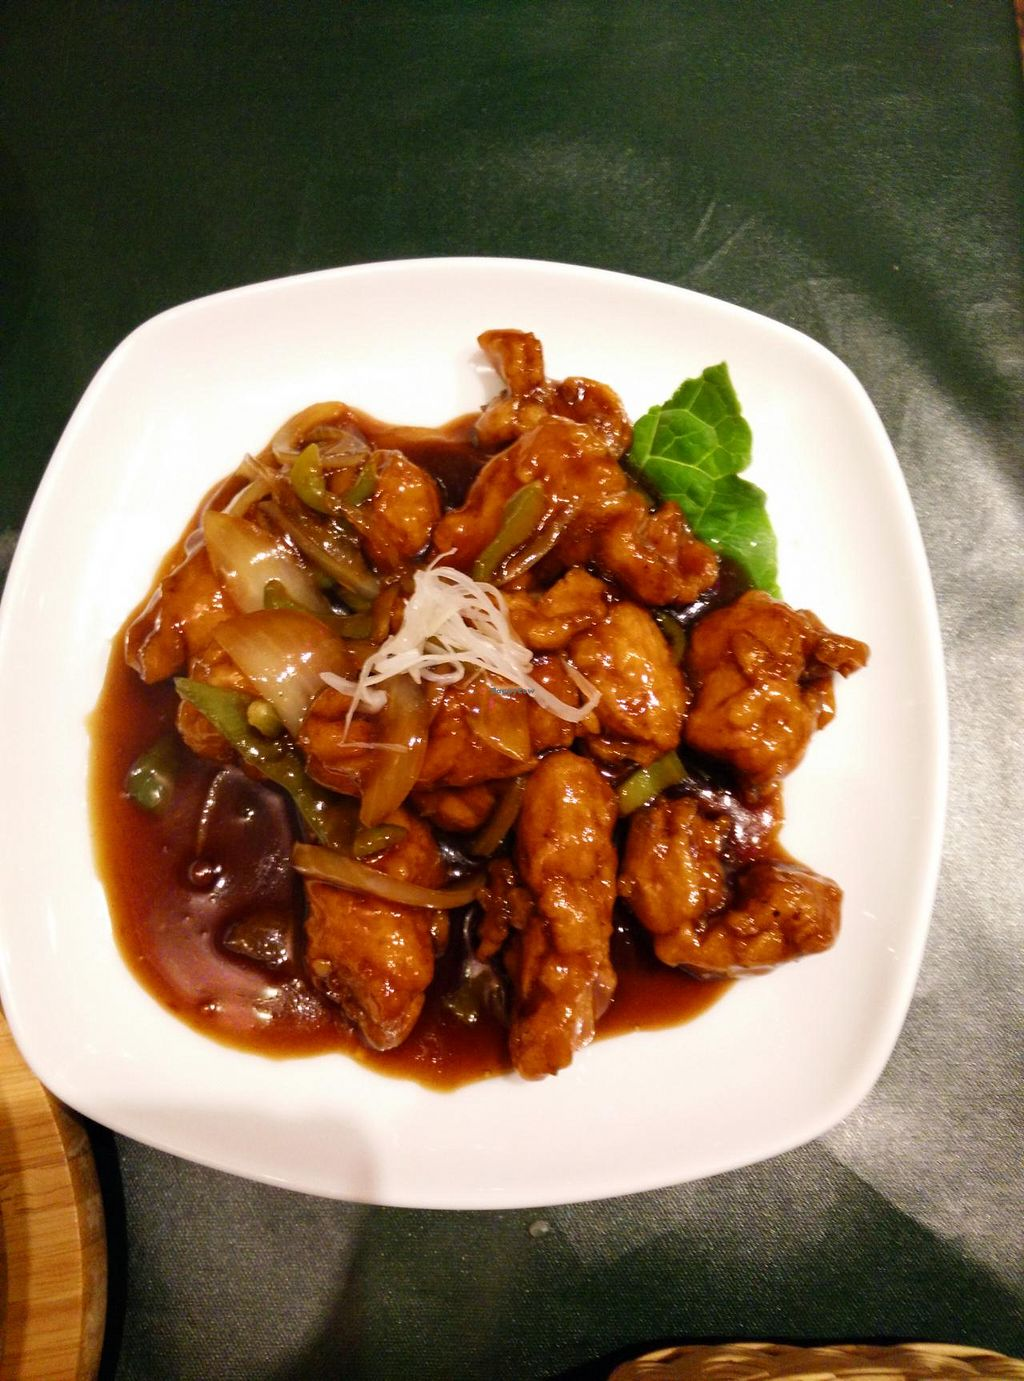 """Photo of Olu Olu Cafe  by <a href=""""/members/profile/Mochigirl"""">Mochigirl</a> <br/>Sweet and sour chicken <br/> March 30, 2015  - <a href='/contact/abuse/image/34448/97360'>Report</a>"""